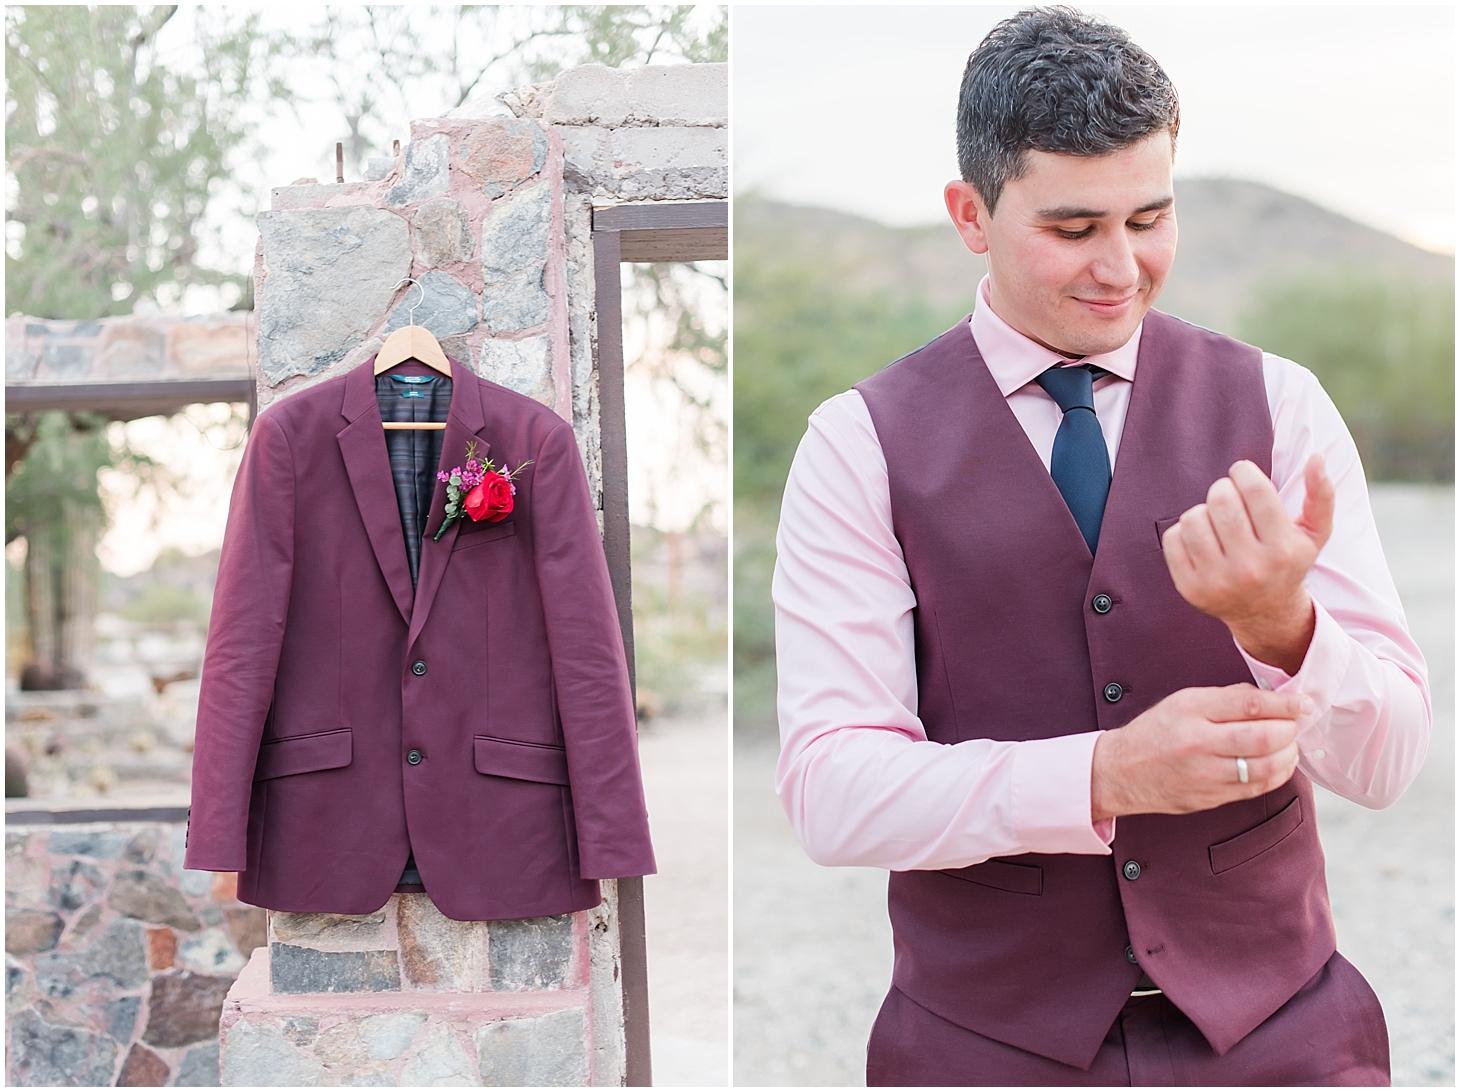 Anniversary session for Nadeera and Alisher, photographed at Scorpion Gulch in Phoenix! Photos taken by Phoenix wedding photographer, Jade Min Photography.